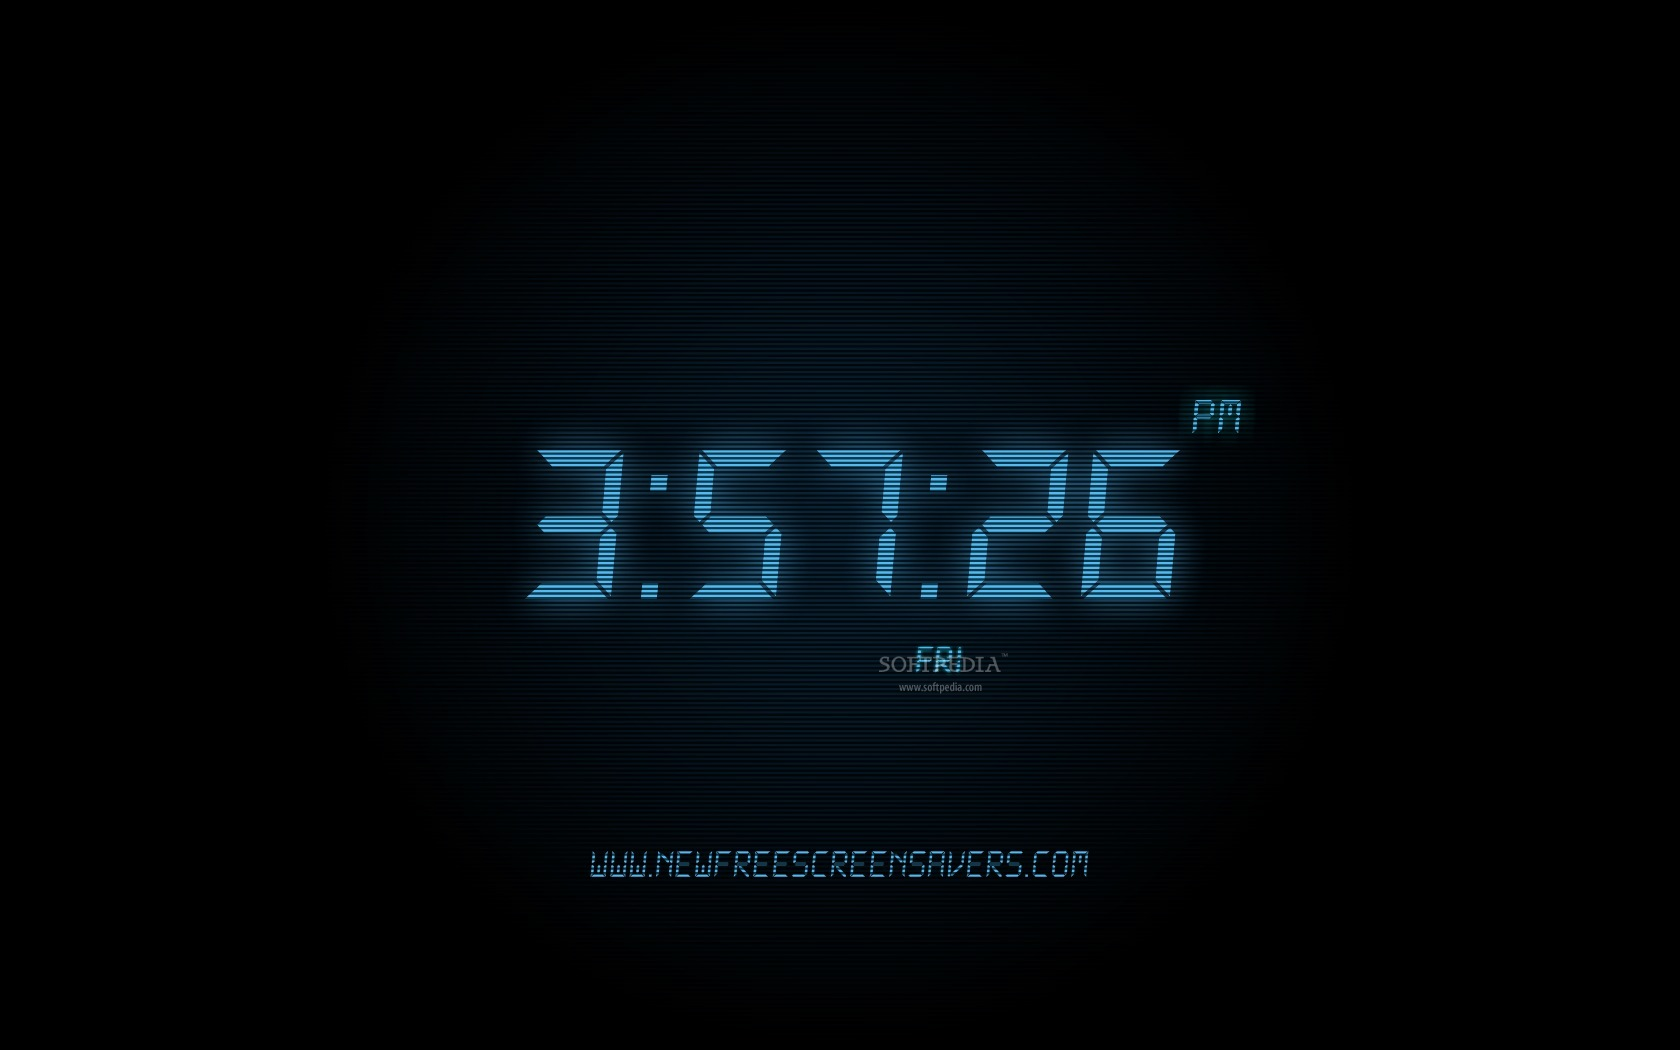 Digital Clock Wallpaper For Windows 7 images